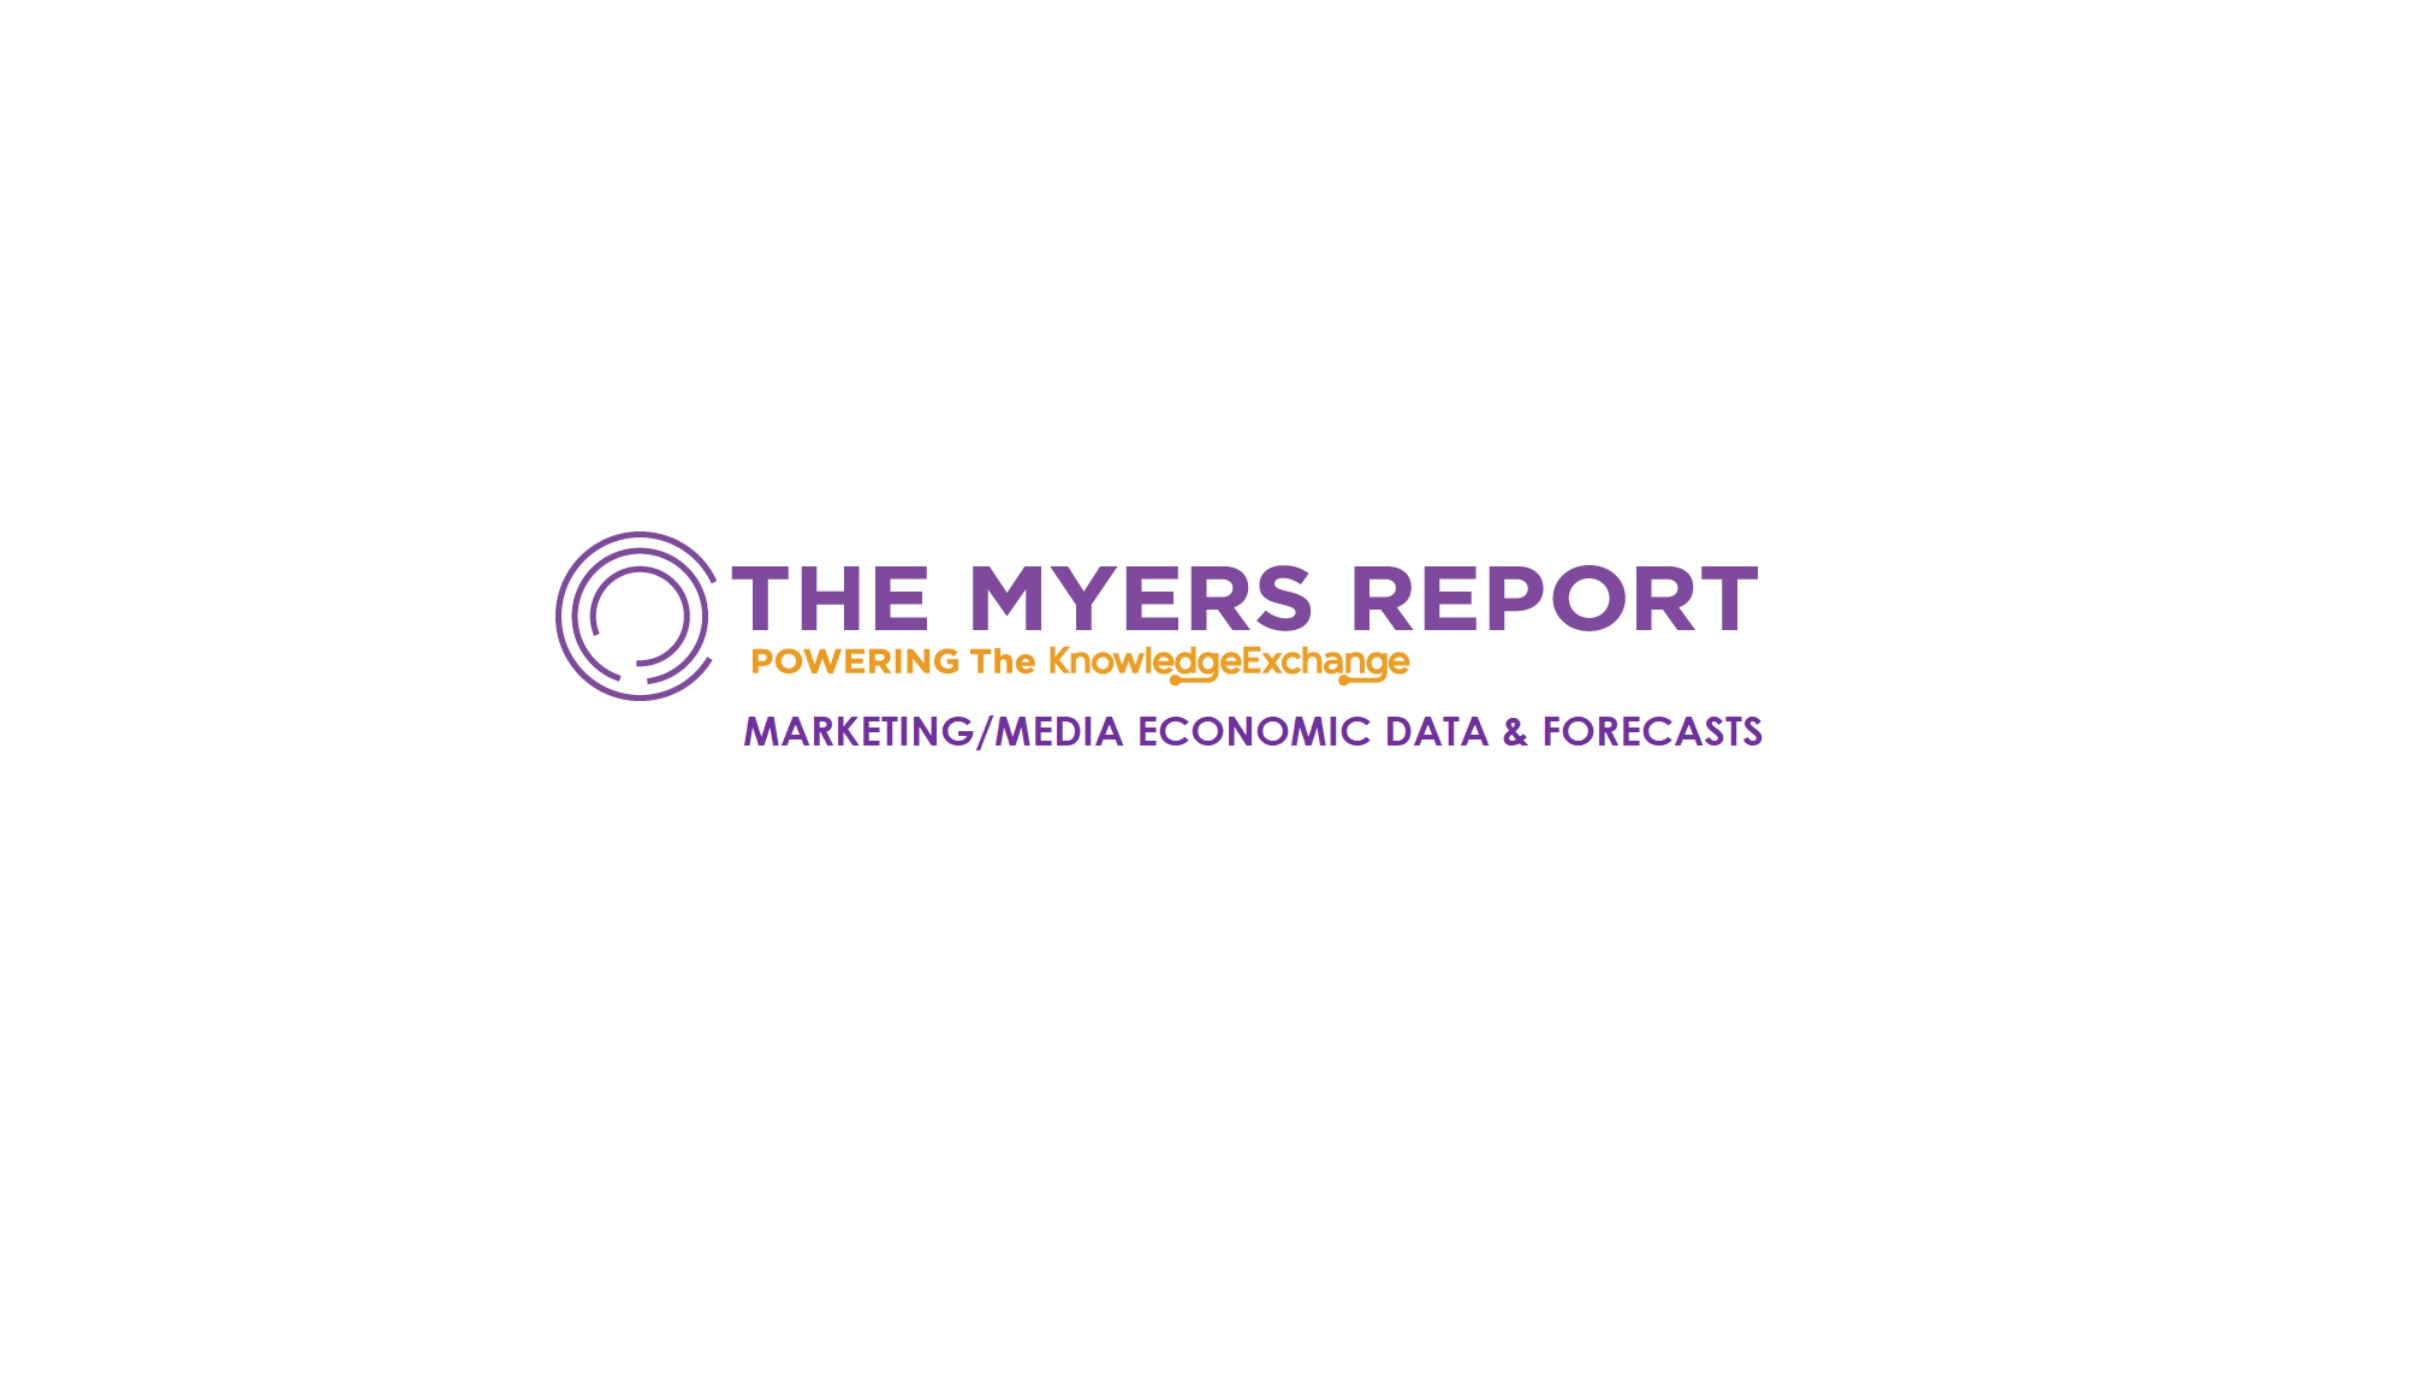 Cover image for  article: 2020 Ad Growth Projected at 4.8%: The Myers Report Forecast